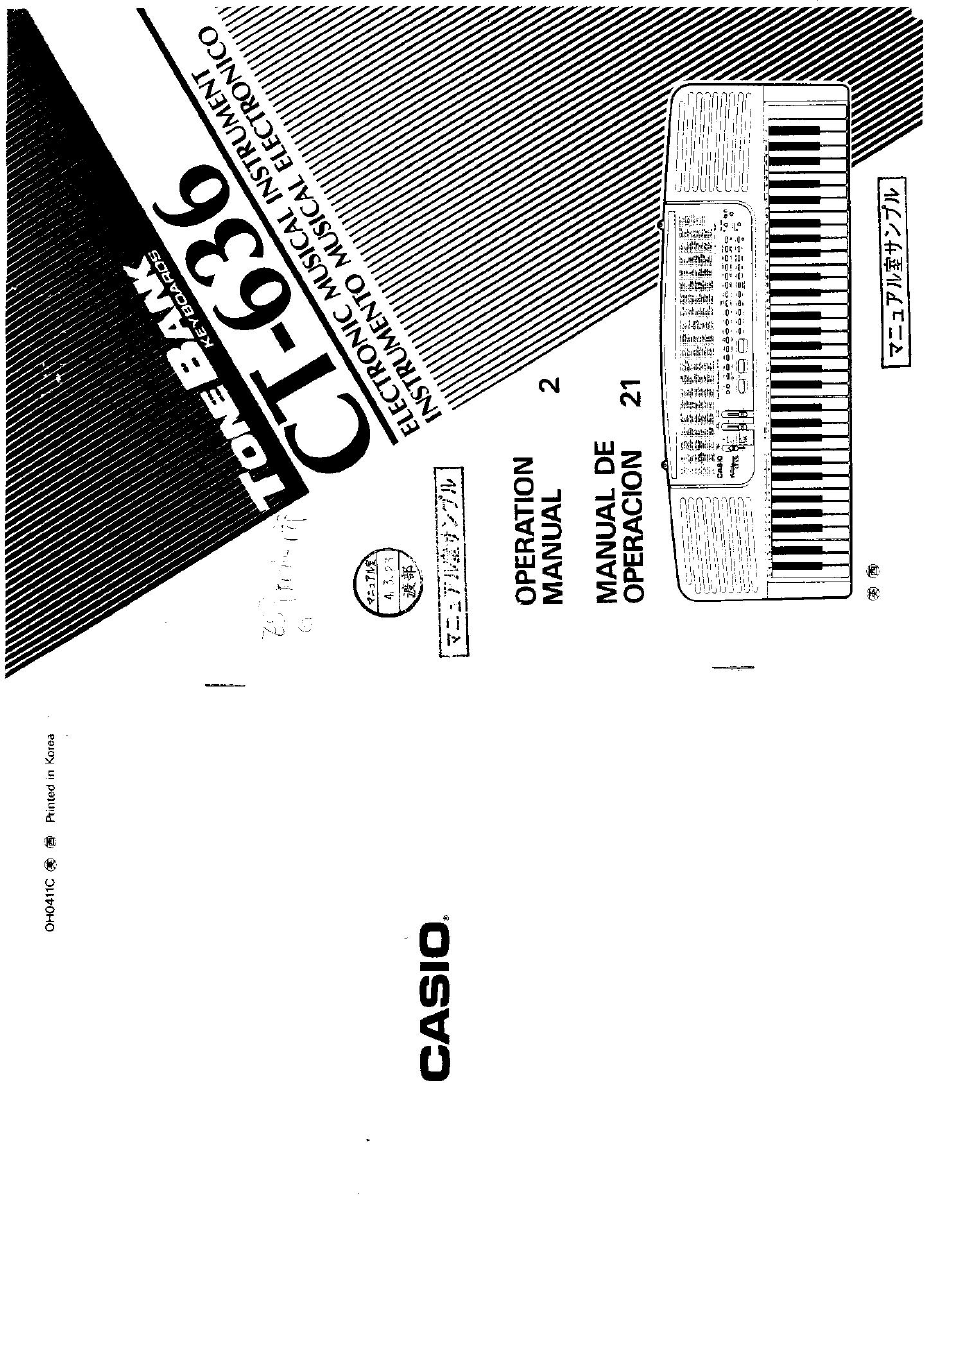 Owners users operating manual for casio ct-638 tone bank.